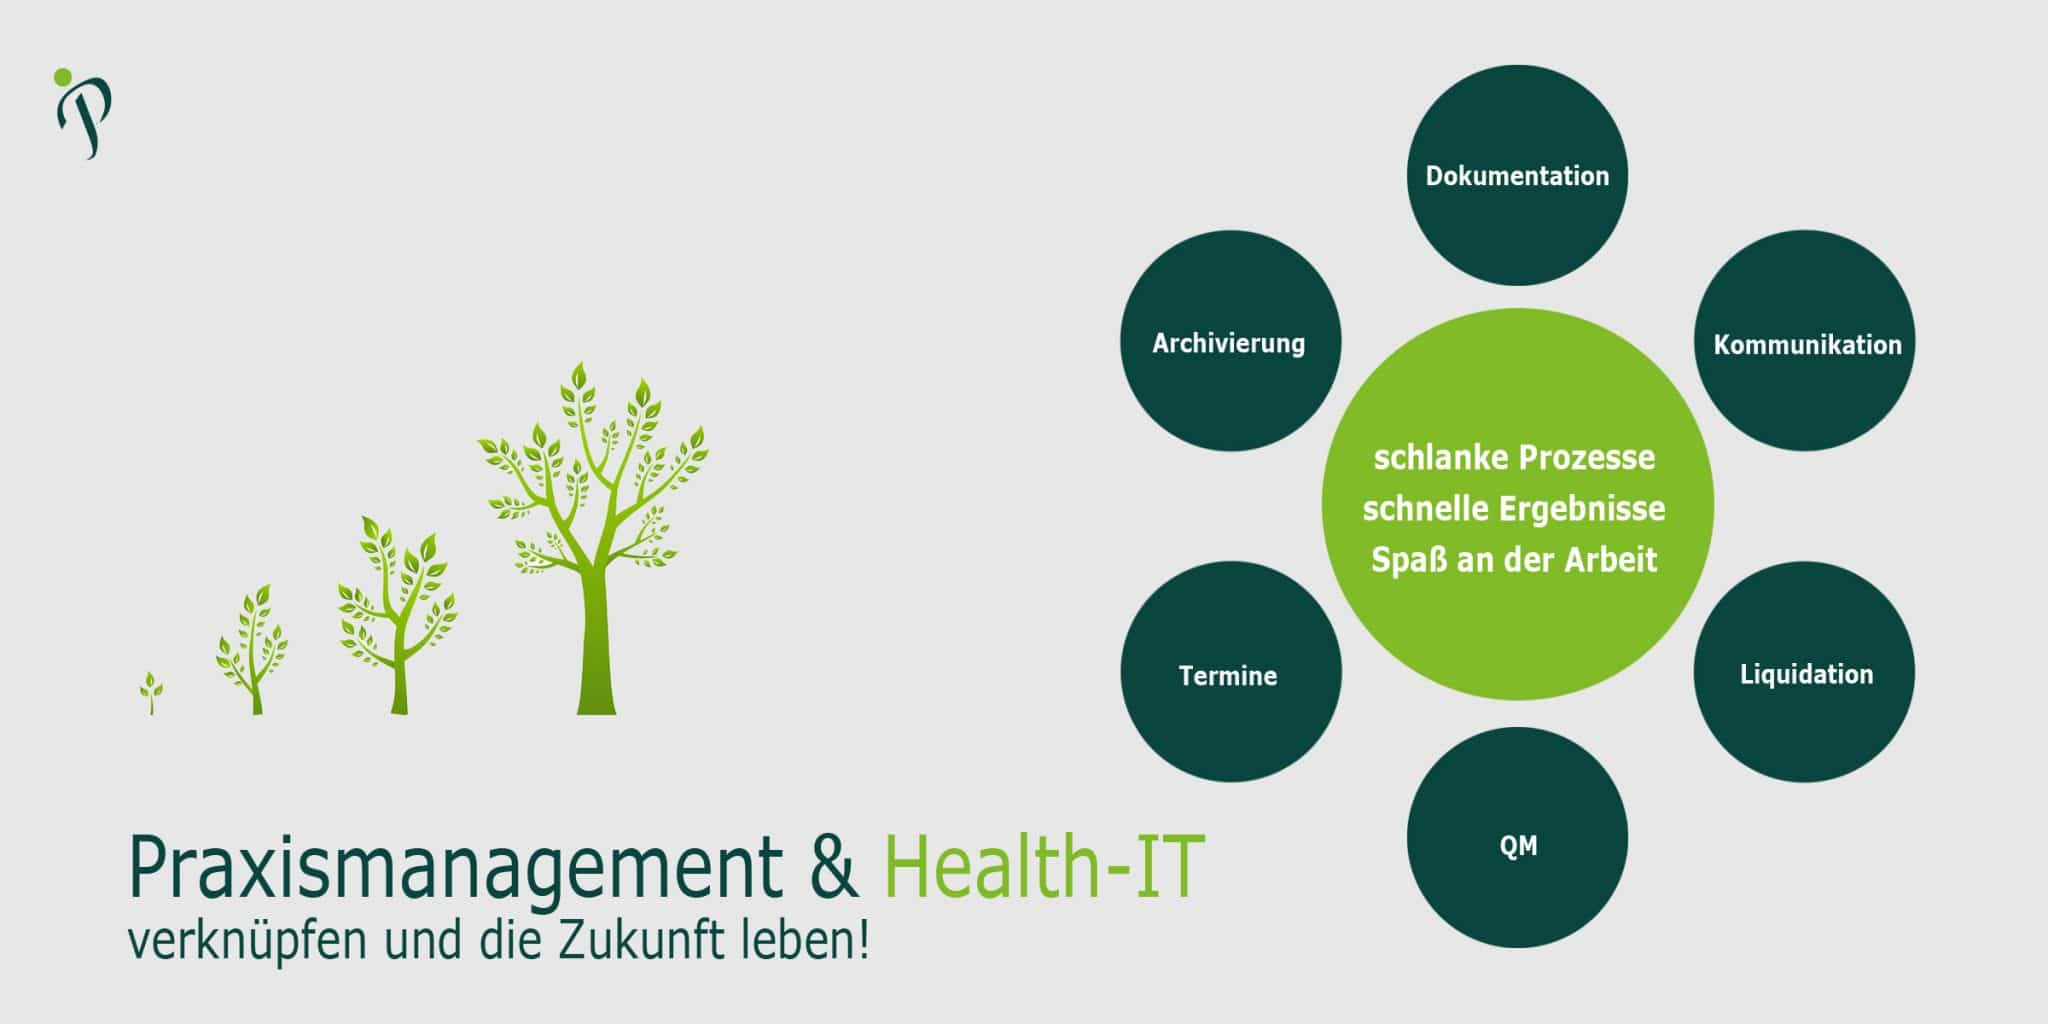 praxismanagement-health-it